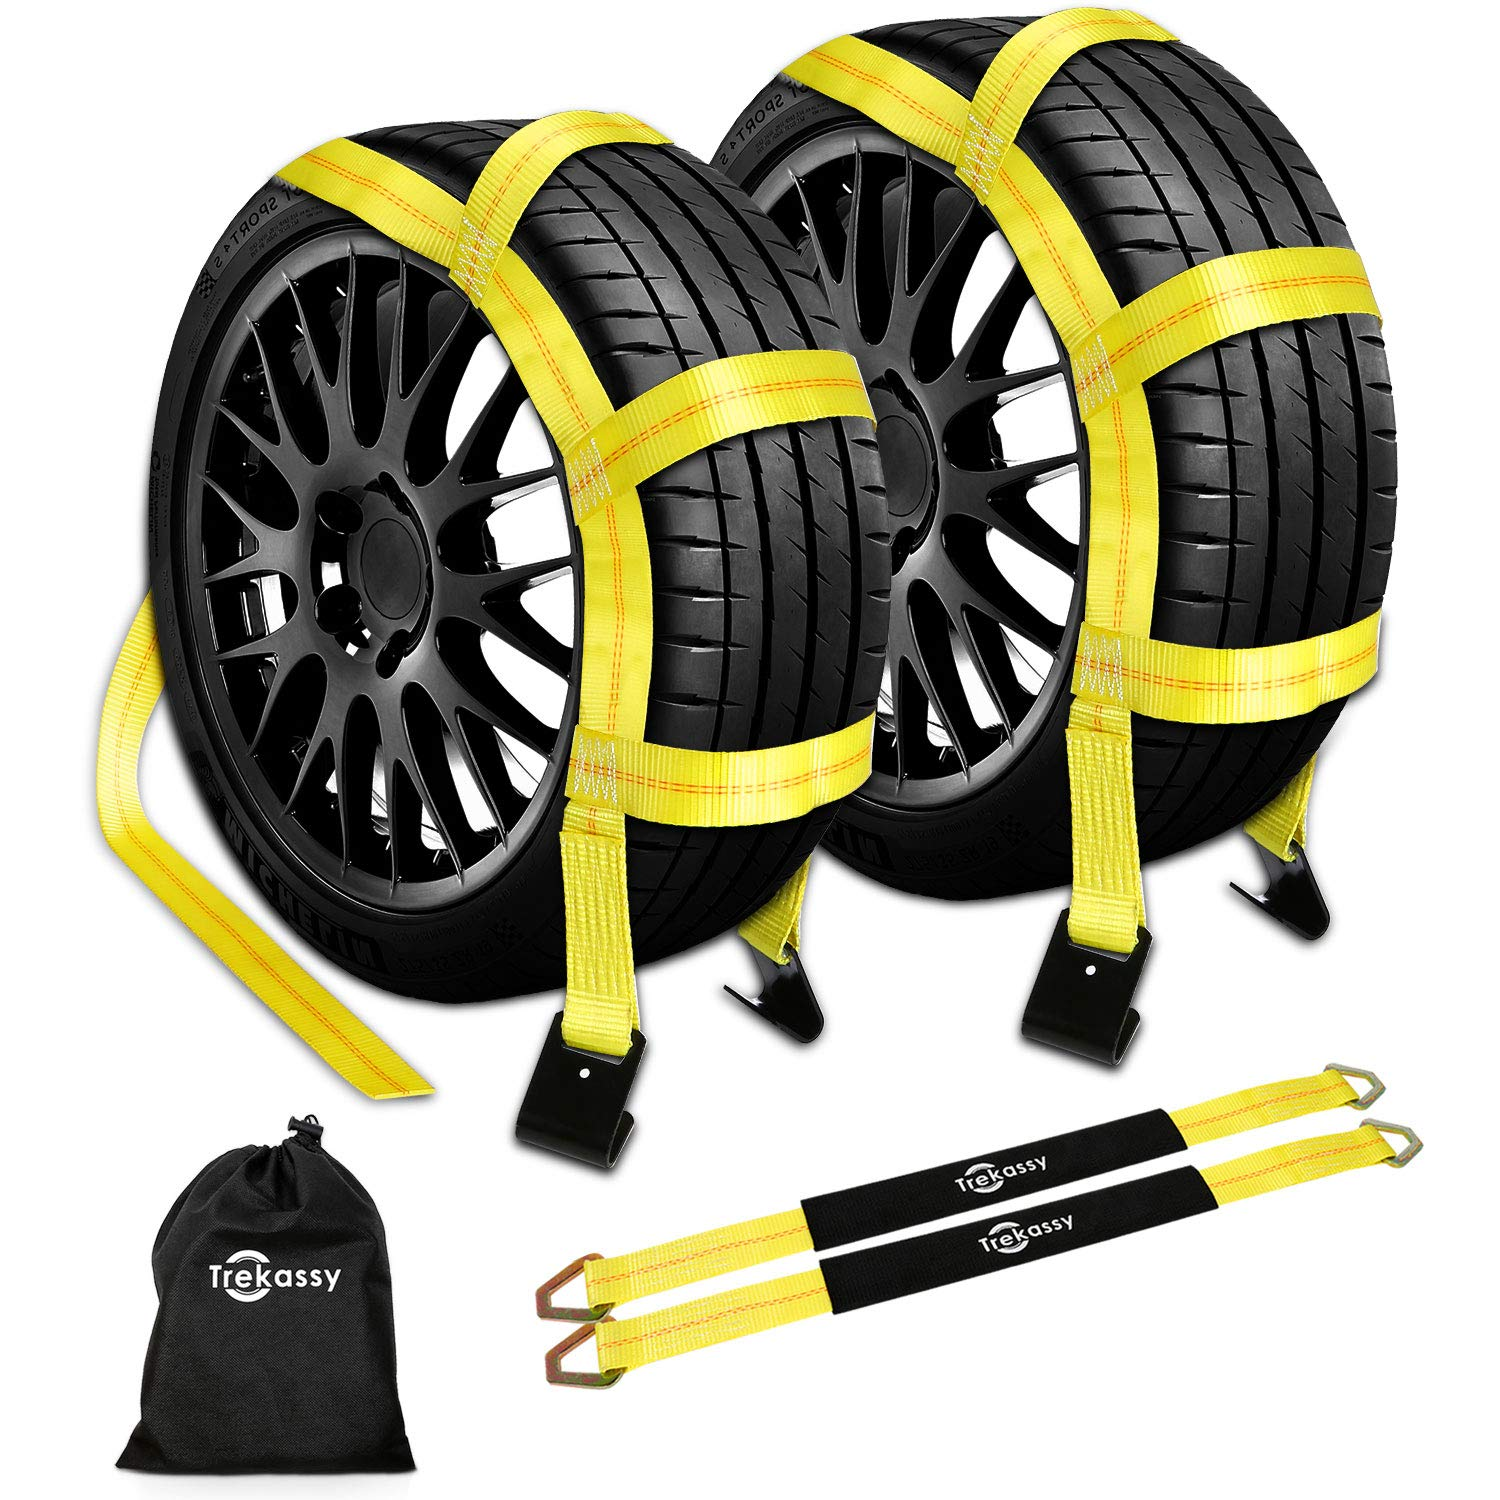 Trekassy Wheel Net Car Tow Dolly Straps with Flat Hooks 2 Pack Heavy Duty for 14''-17'' Tires Include 2 Axle Straps and 1 Carrying Bag by Trekassy